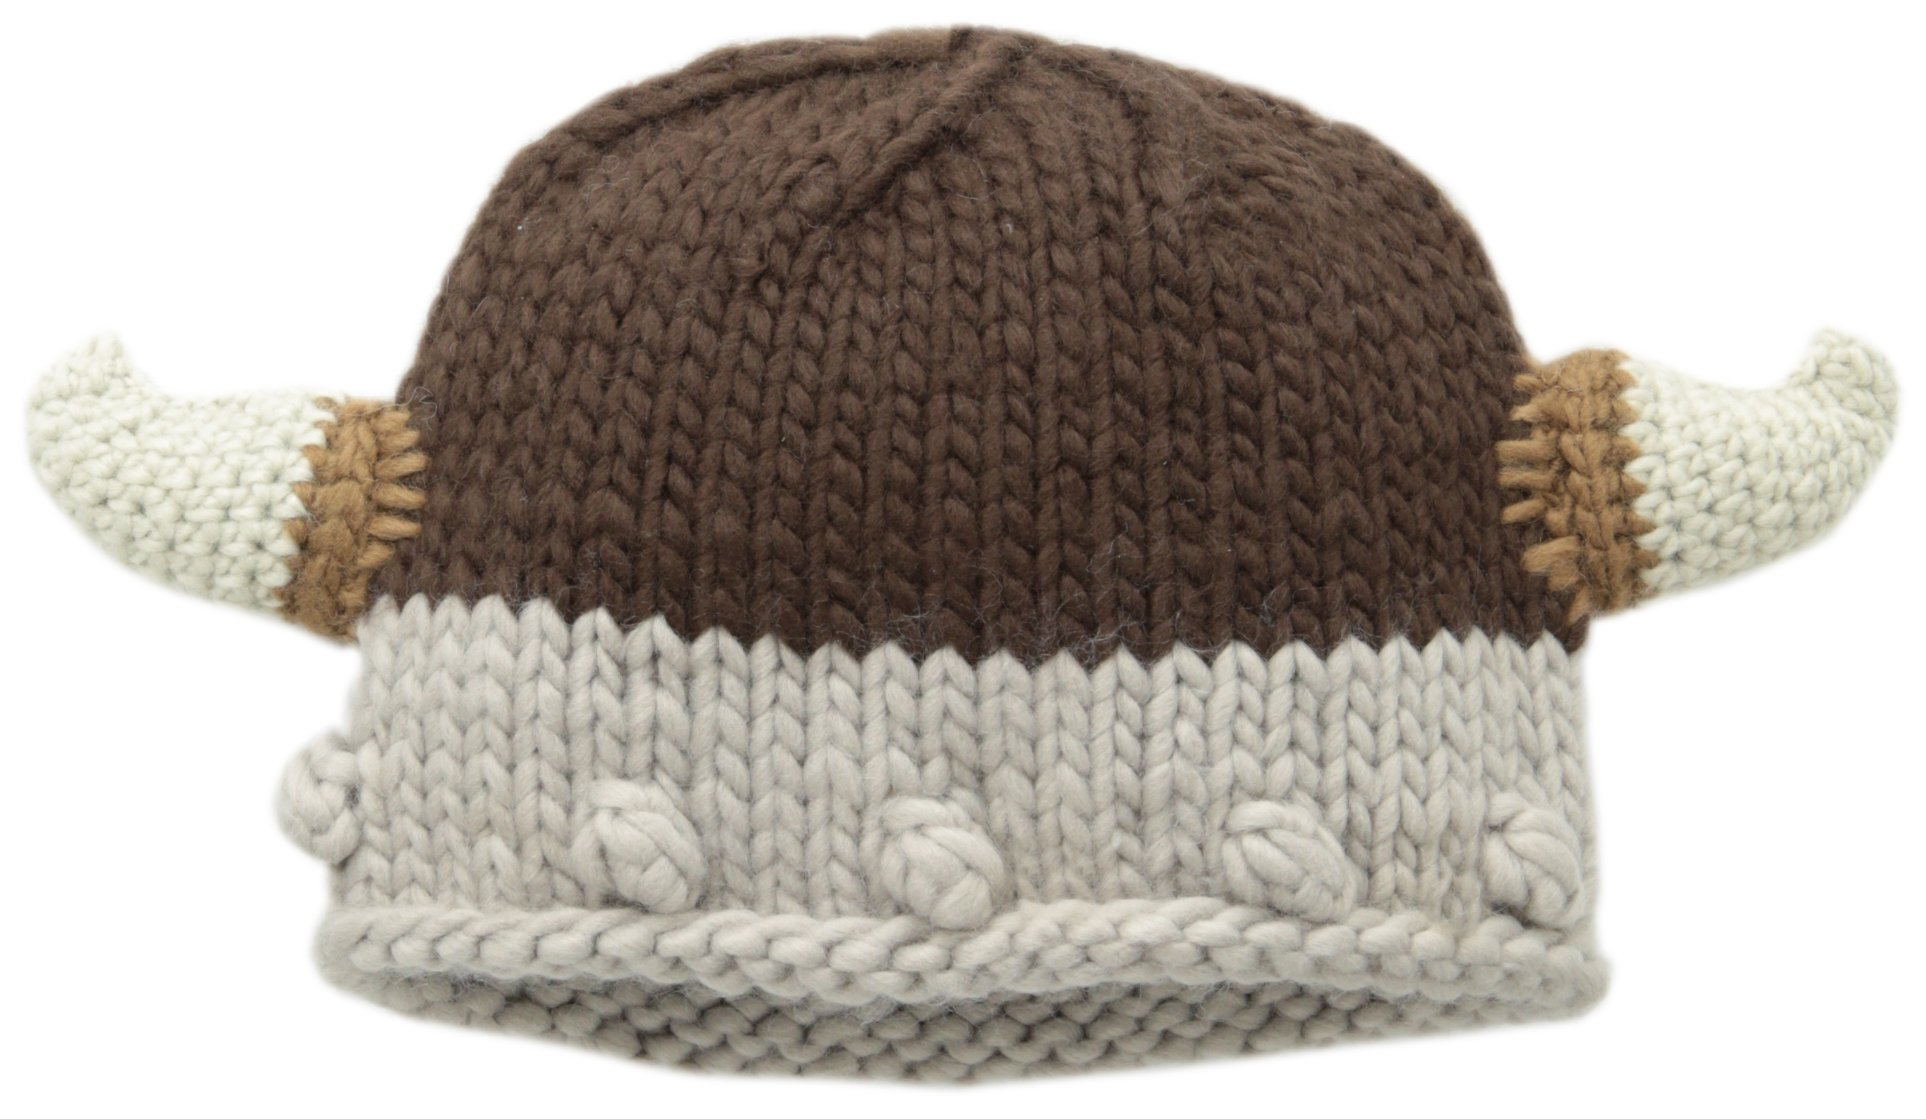 San Diego Hat Little Boys' Knit Viking with Horns, Black, 2-7 Years